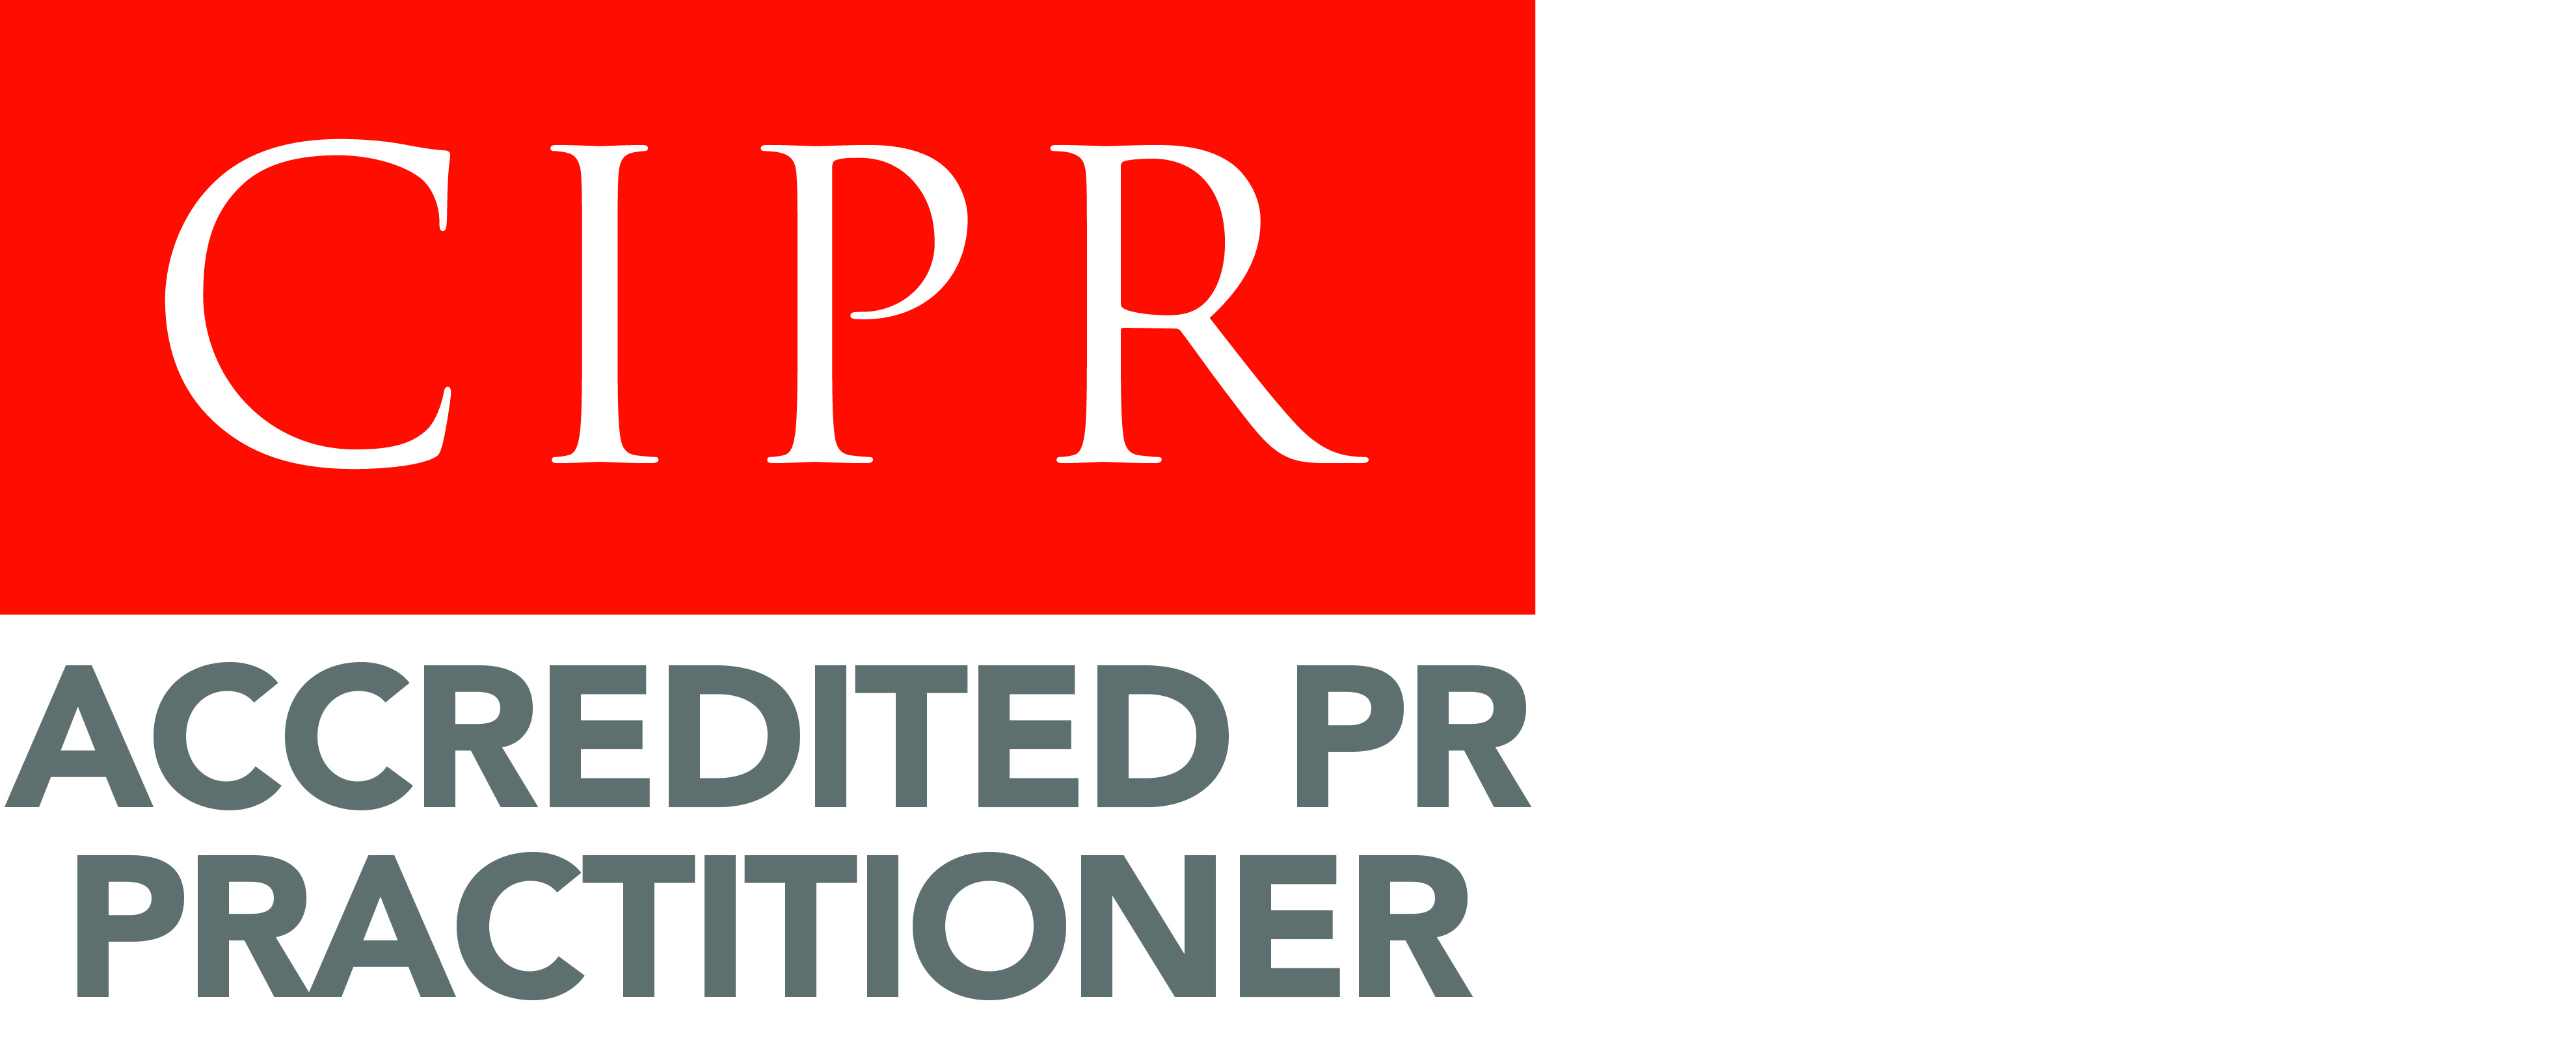 Chartered Institute of Public Relations. Accredited PR Practitioner (logo)